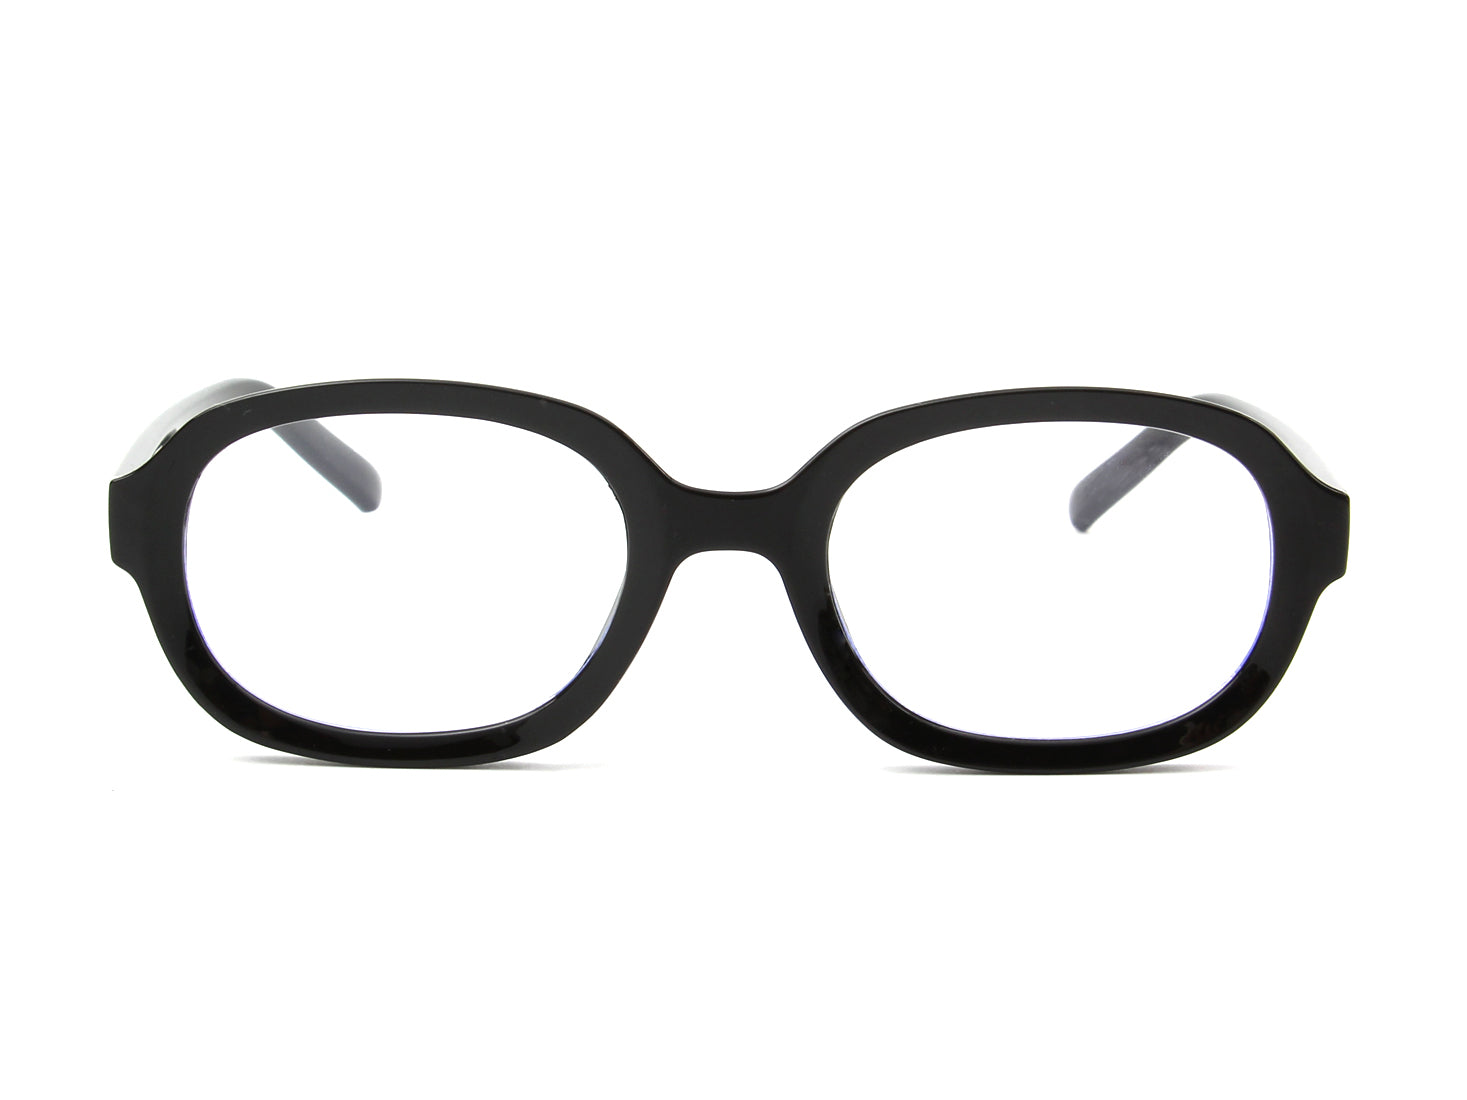 B1001 - Round Oval Blue Light Blocker Glasses - Iris Fashion Inc.